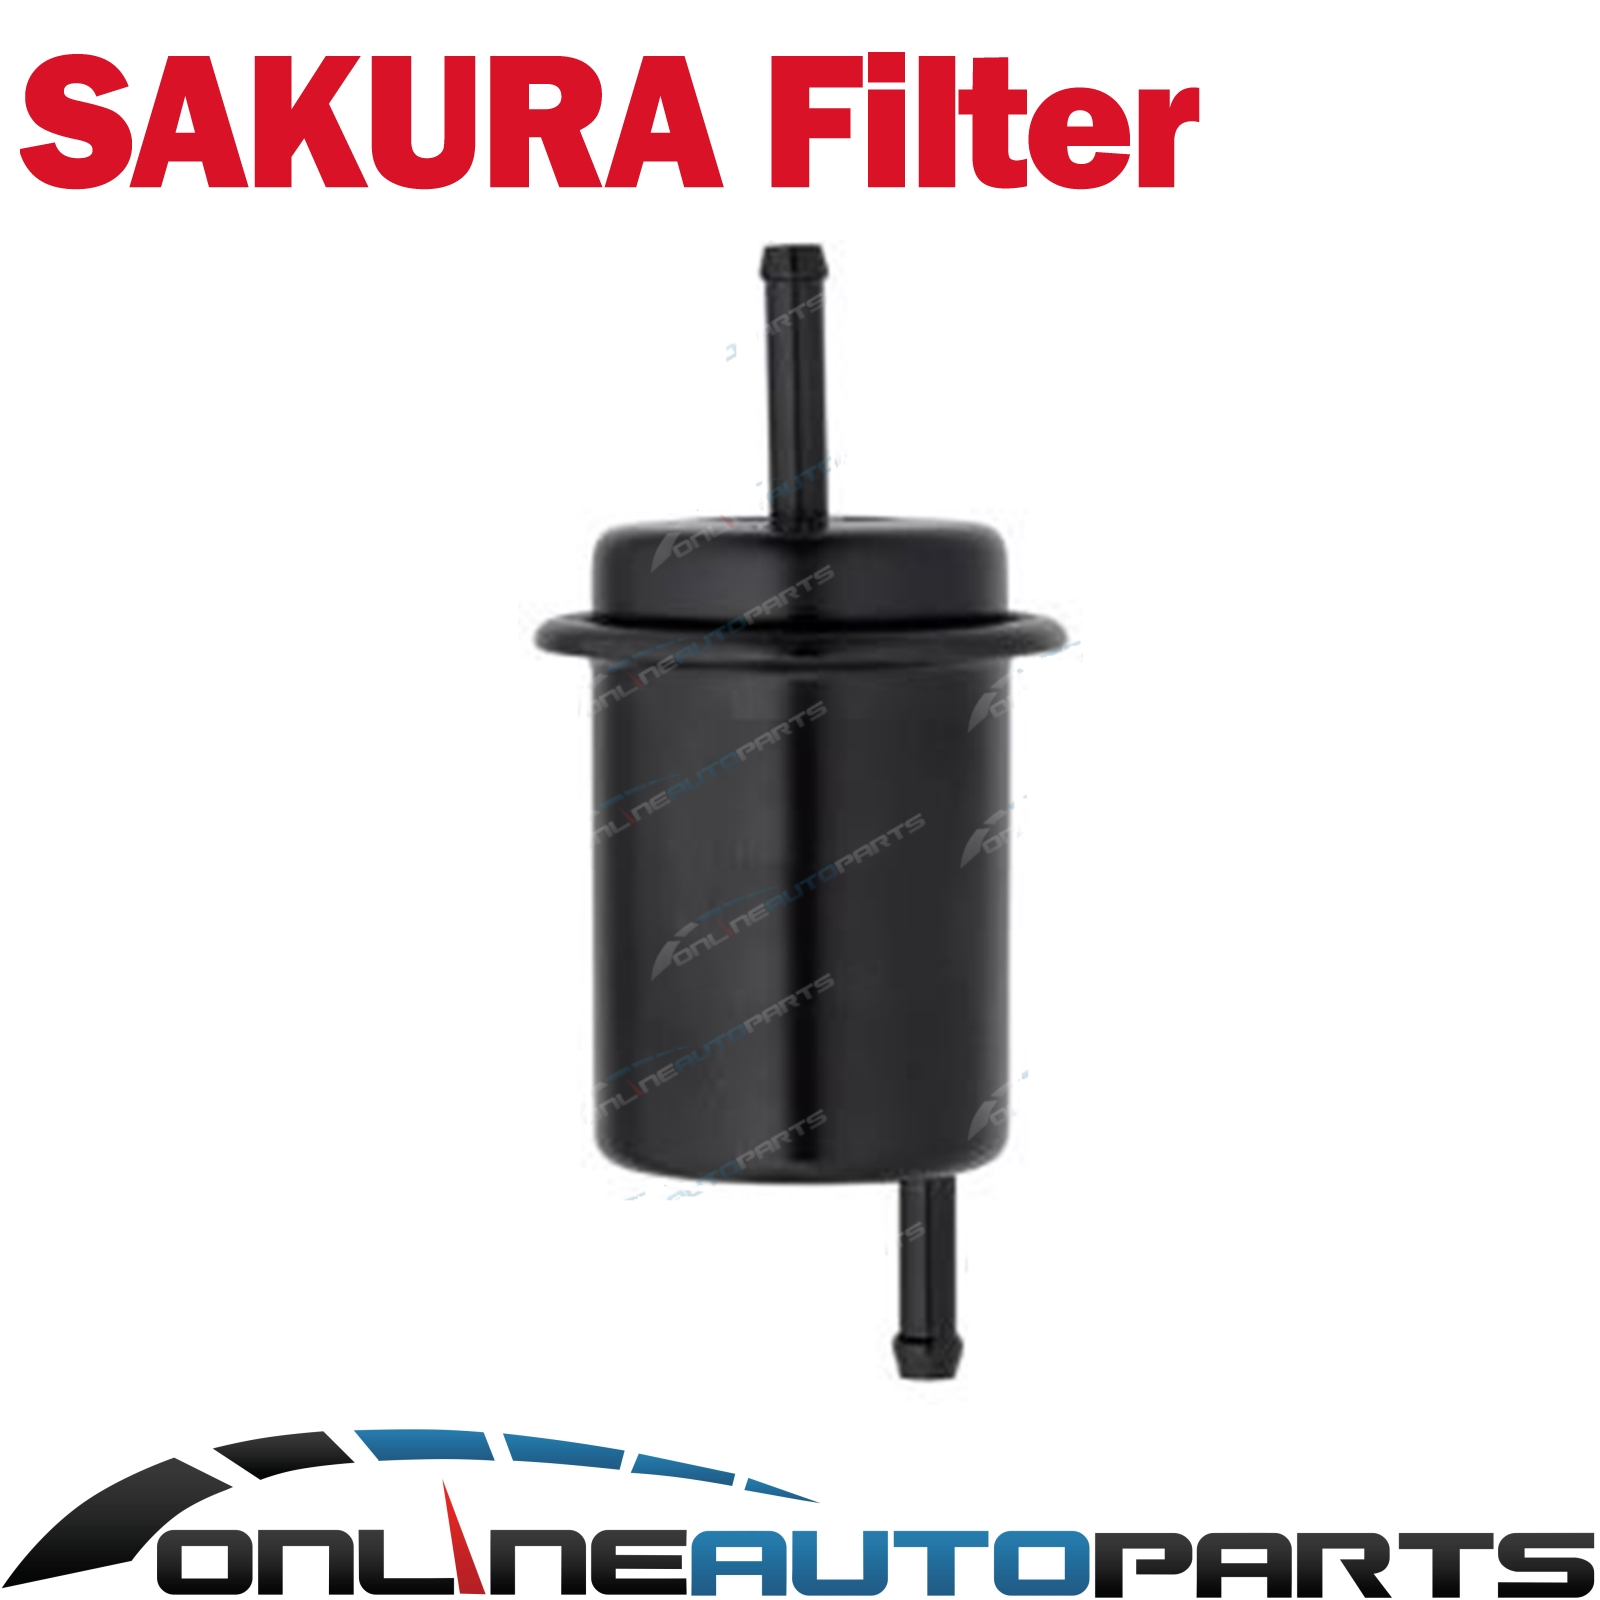 efi fuel filter suits mazda b2600 bravo un 1999 2006 4cyl. Black Bedroom Furniture Sets. Home Design Ideas